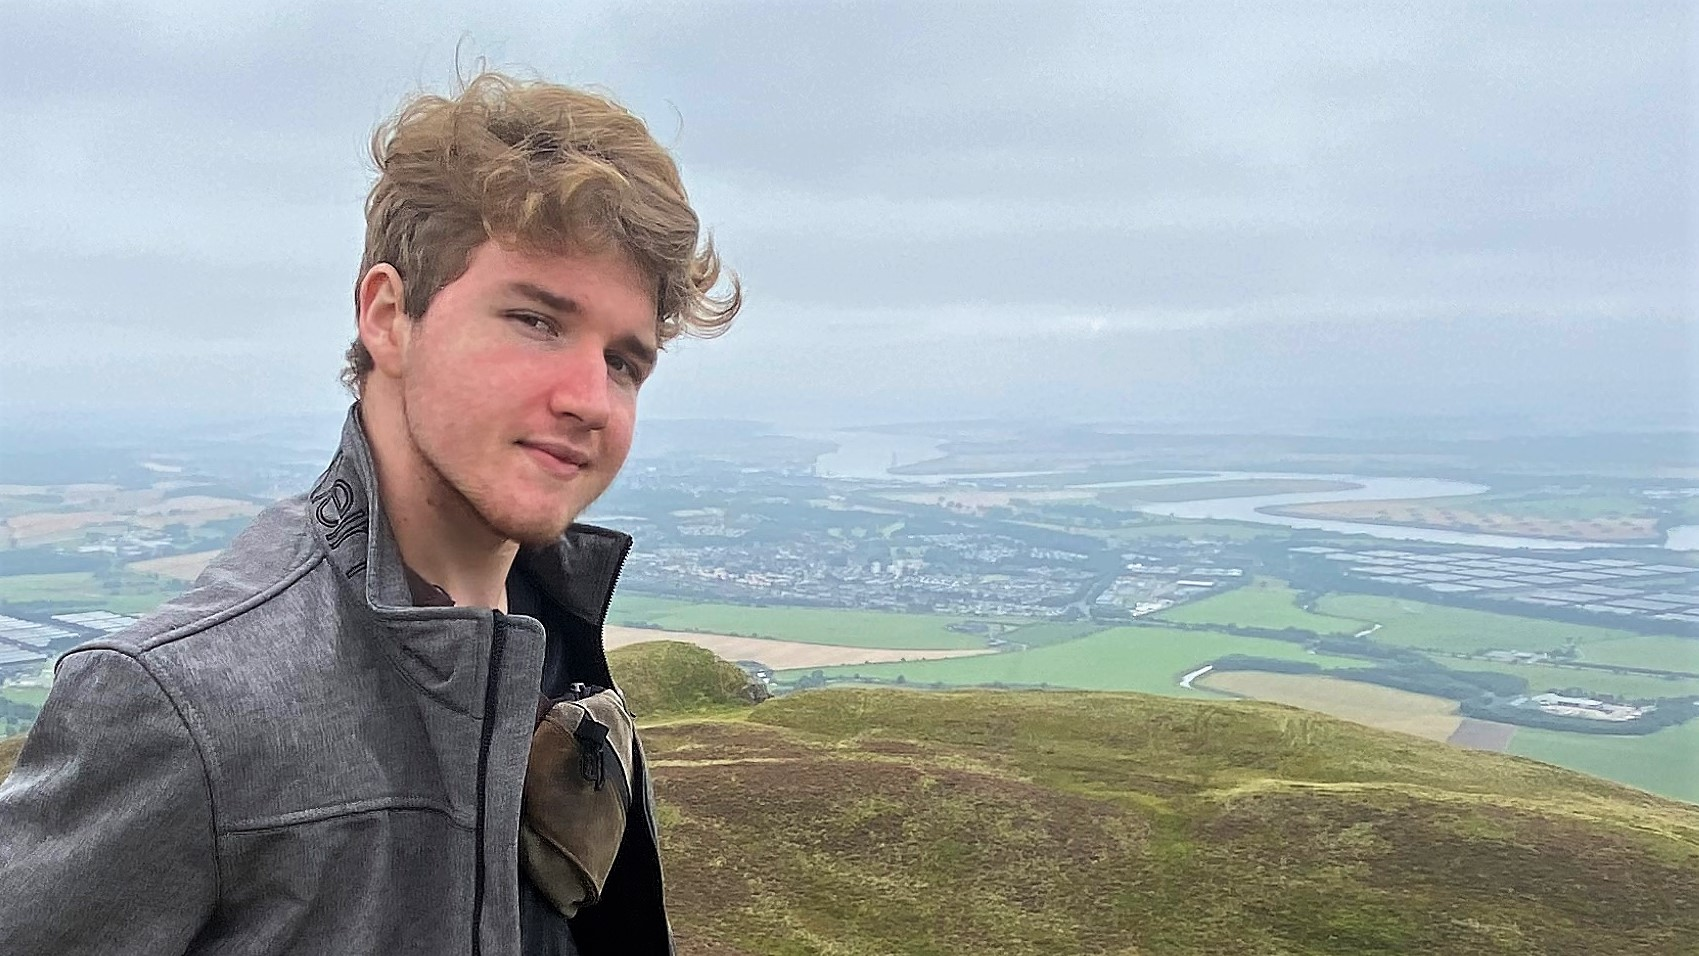 Kit Neikirk pictured with vast landscape in background.